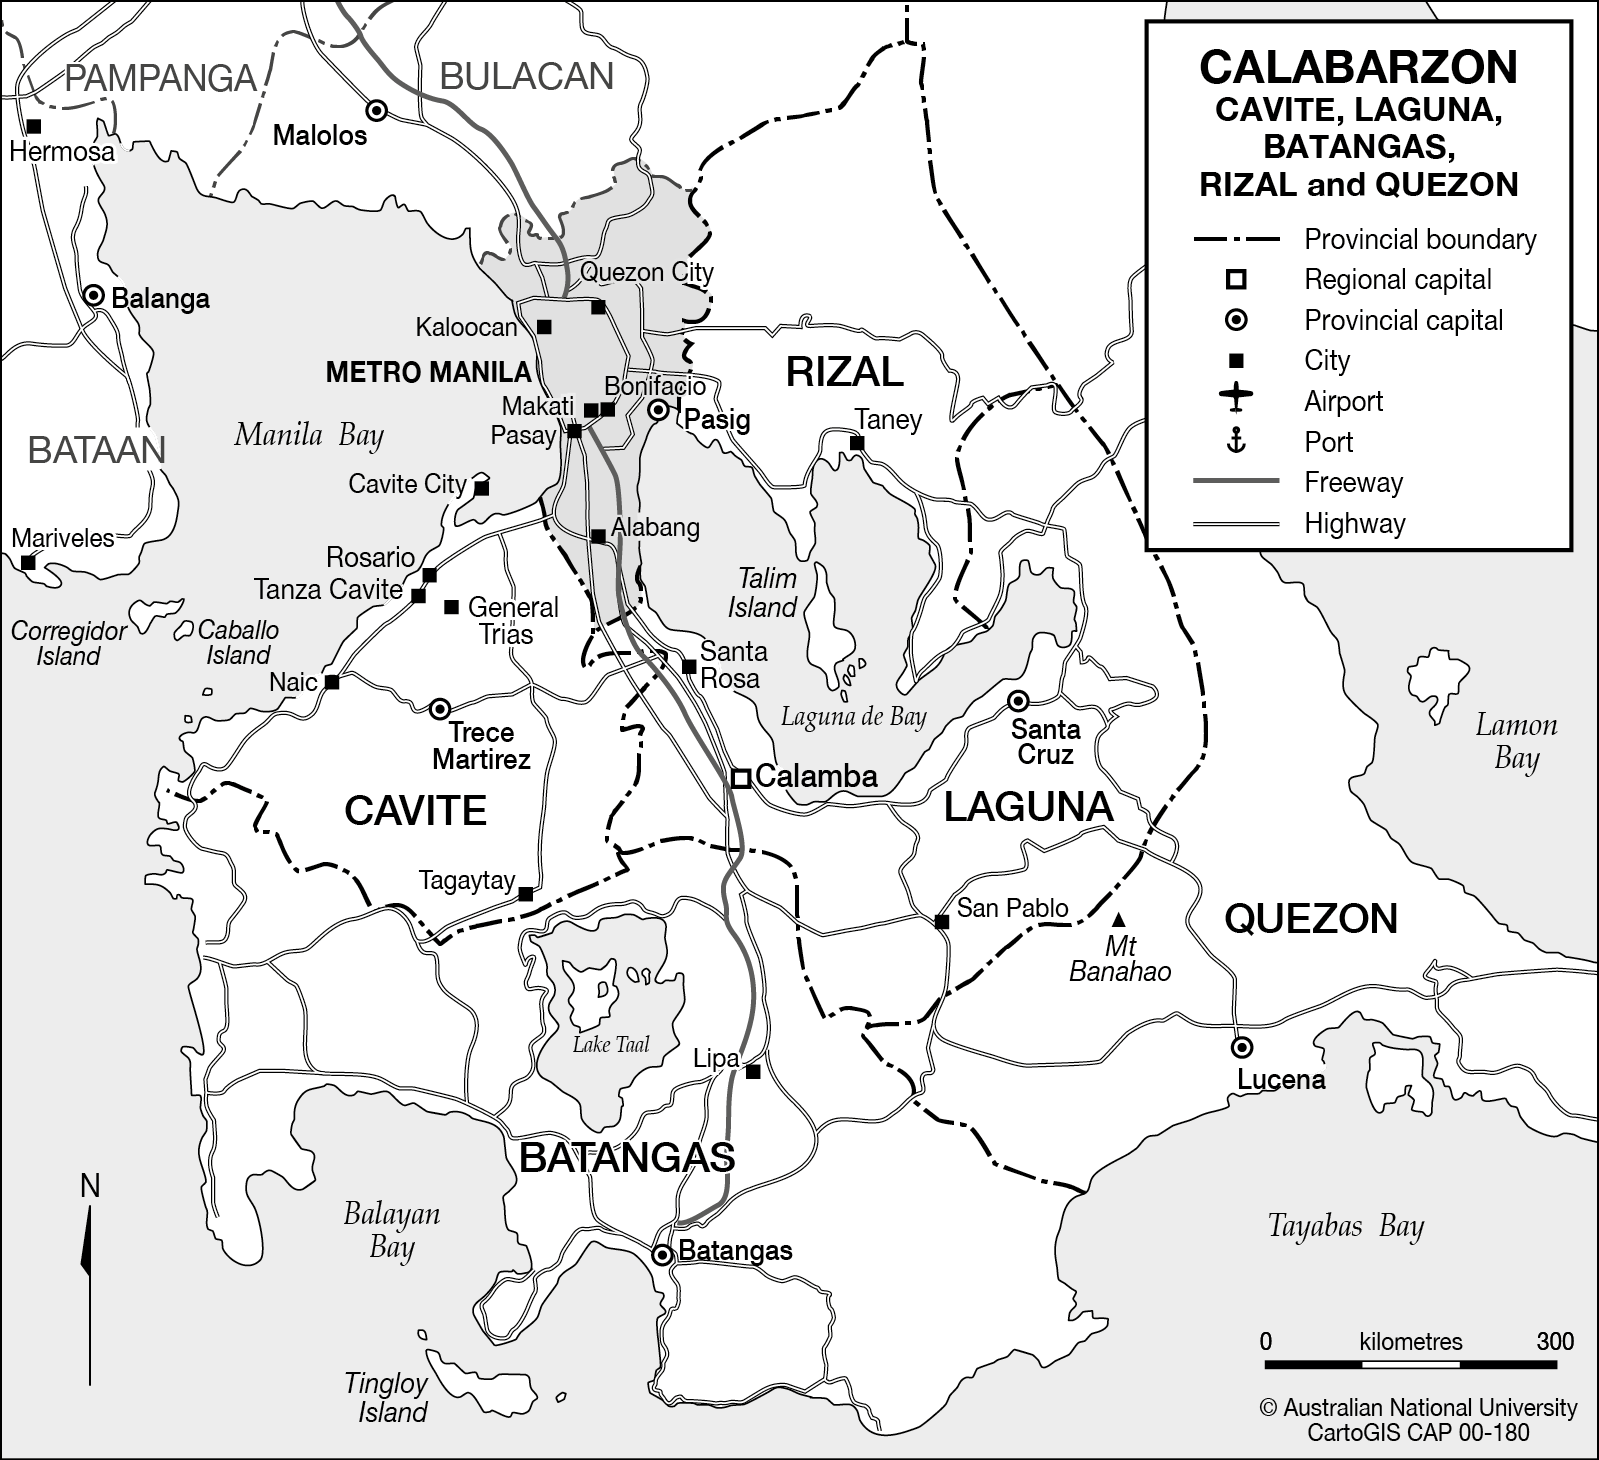 The Calabarzon Region of Luzon, Philippines   CartoGIS Services